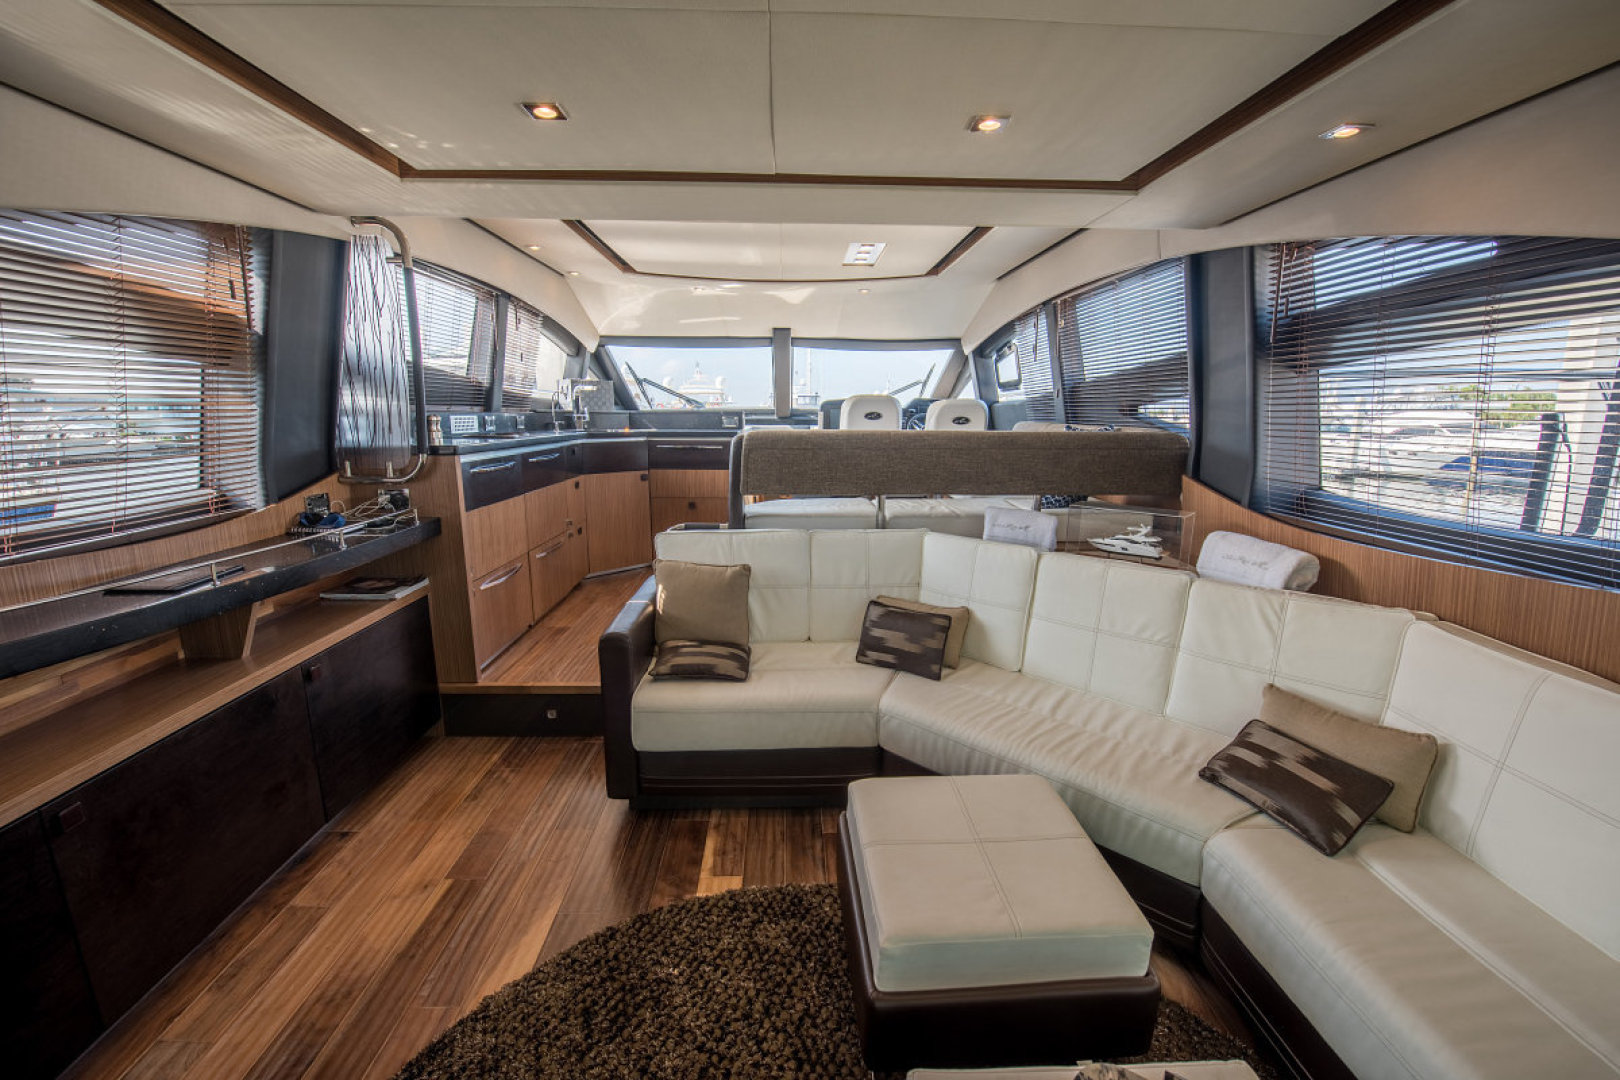 Sea Ray-L590 Fly 2016-2016 Sea Ray L590 Fly Ft. Lauderdale-Florida-United States-1284623 | Thumbnail